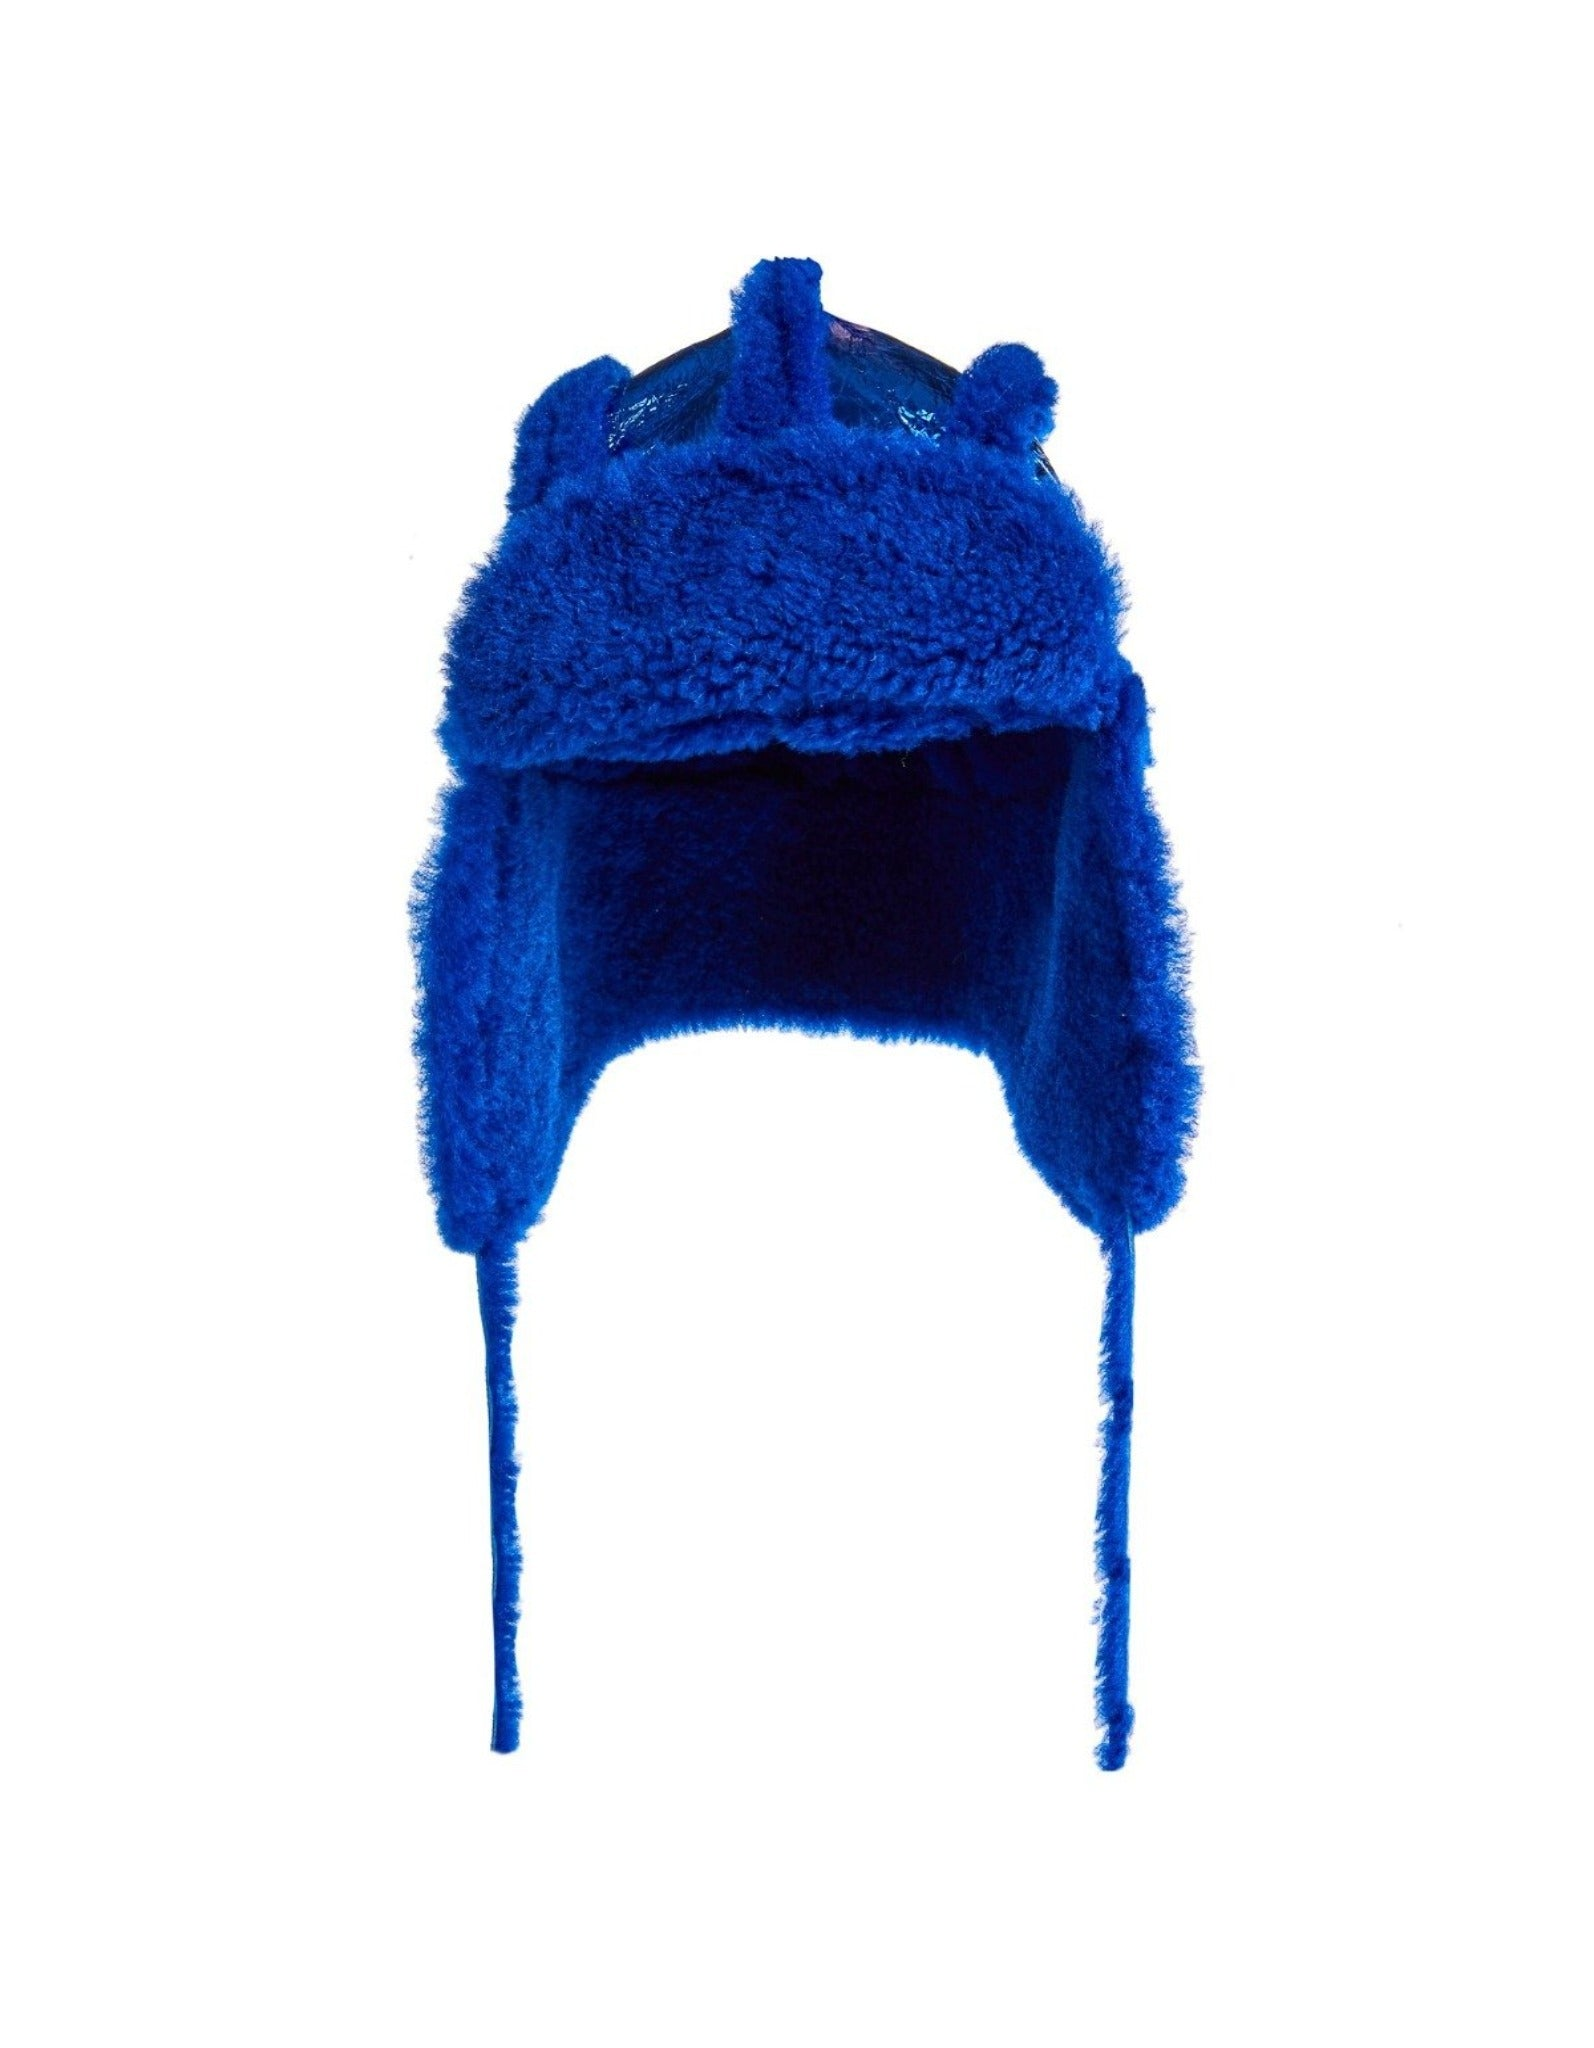 M'A KIDS EAR COVER HAT BLUE LEATHER